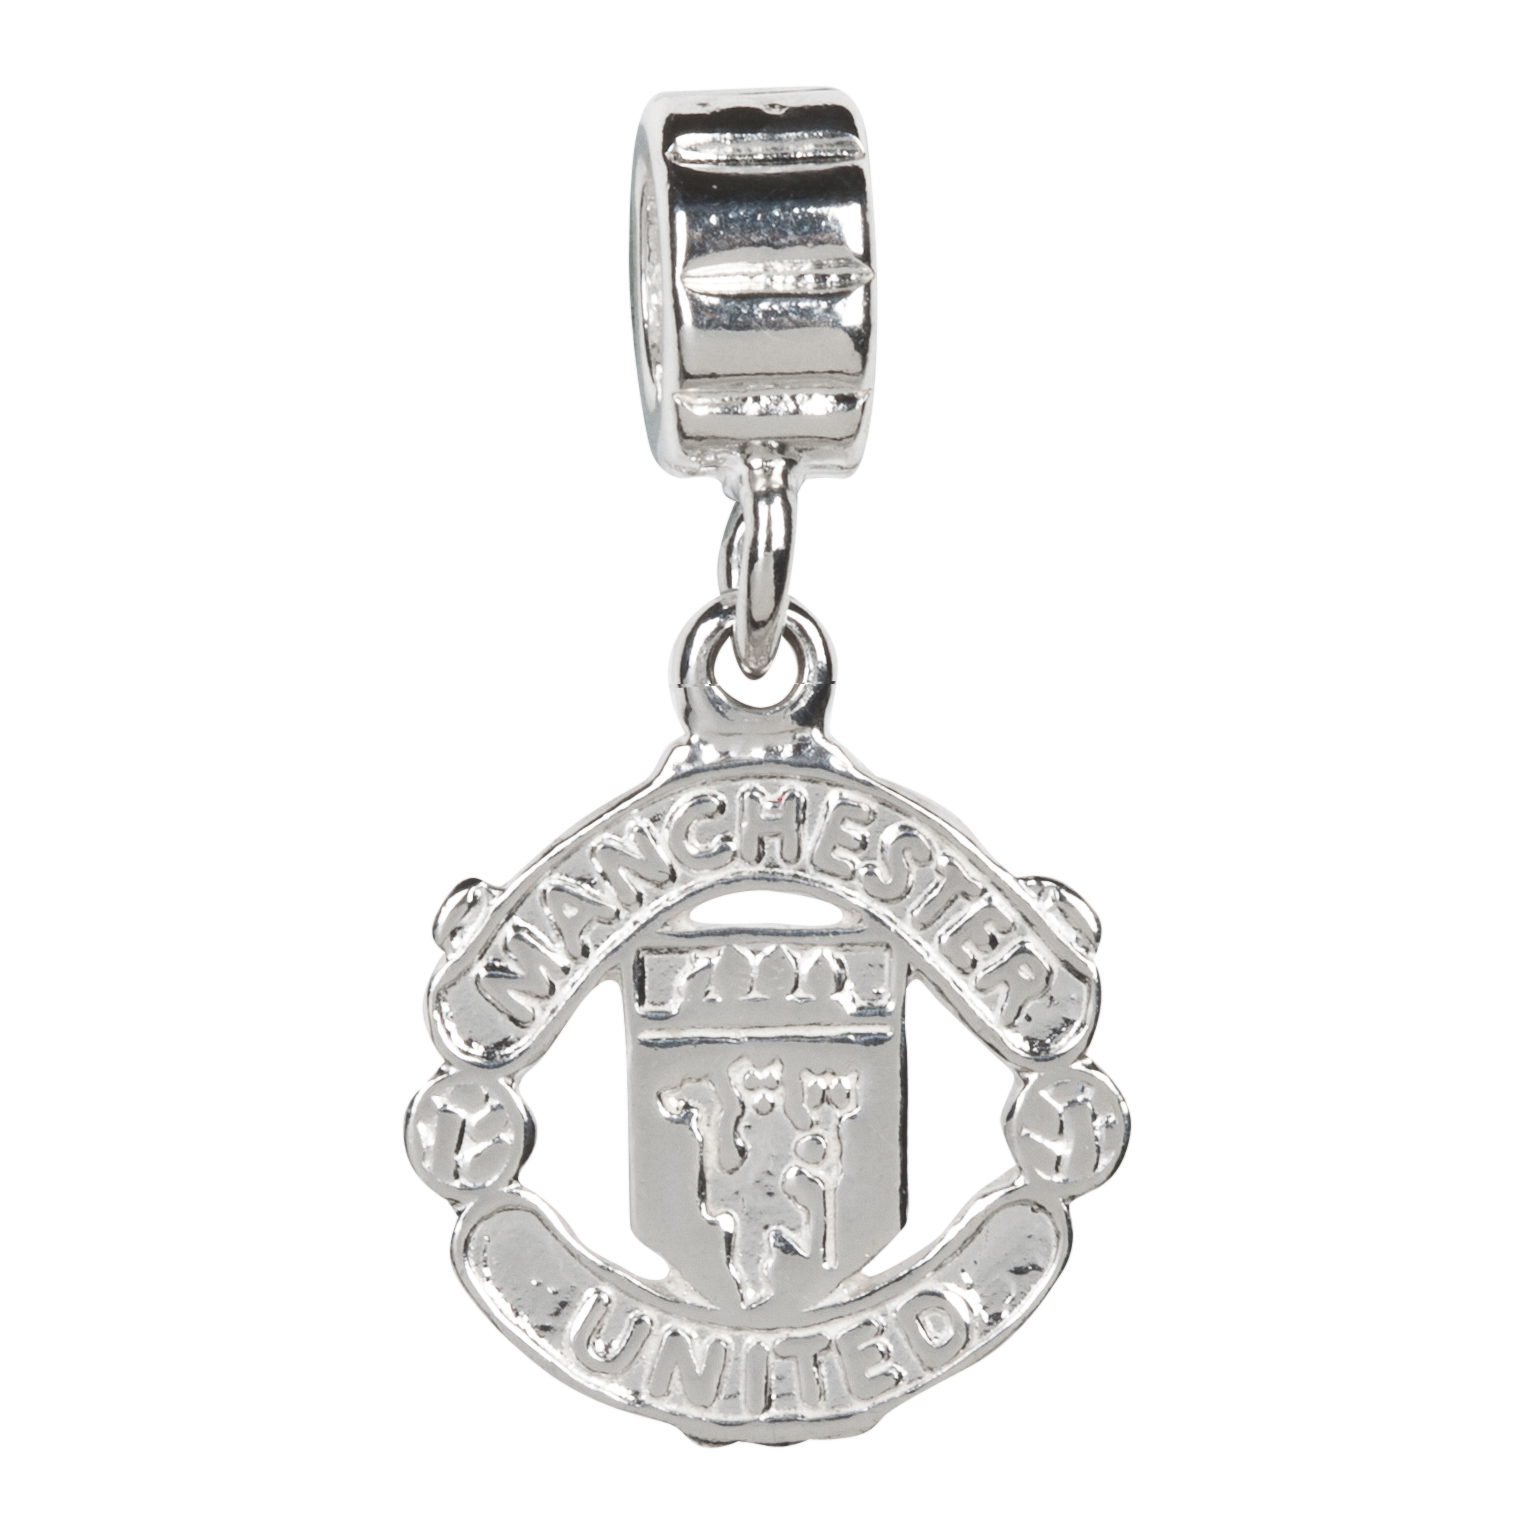 Manchester United Crest Bracelet Charm - Sterling Silver